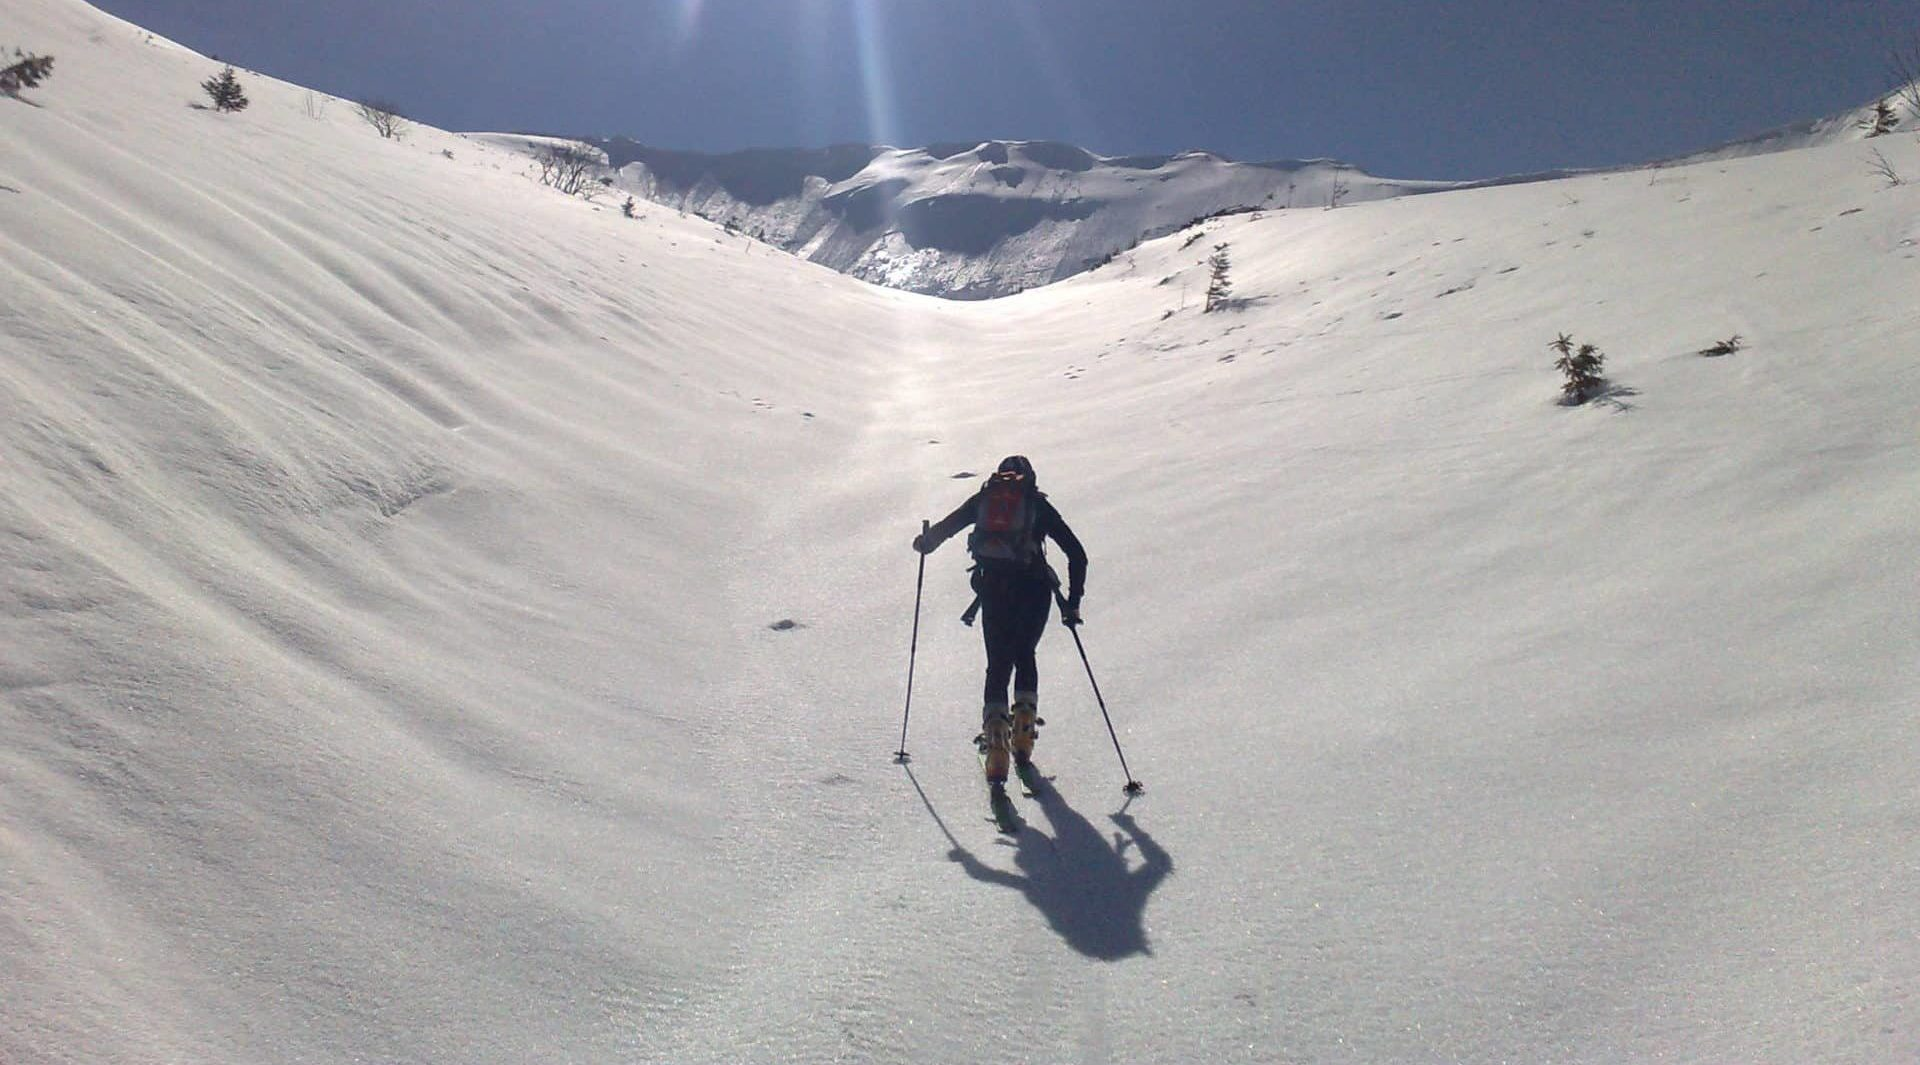 ab625f231895a Ski mountaineering in the High and West Tatras. Ski Touring trip ...